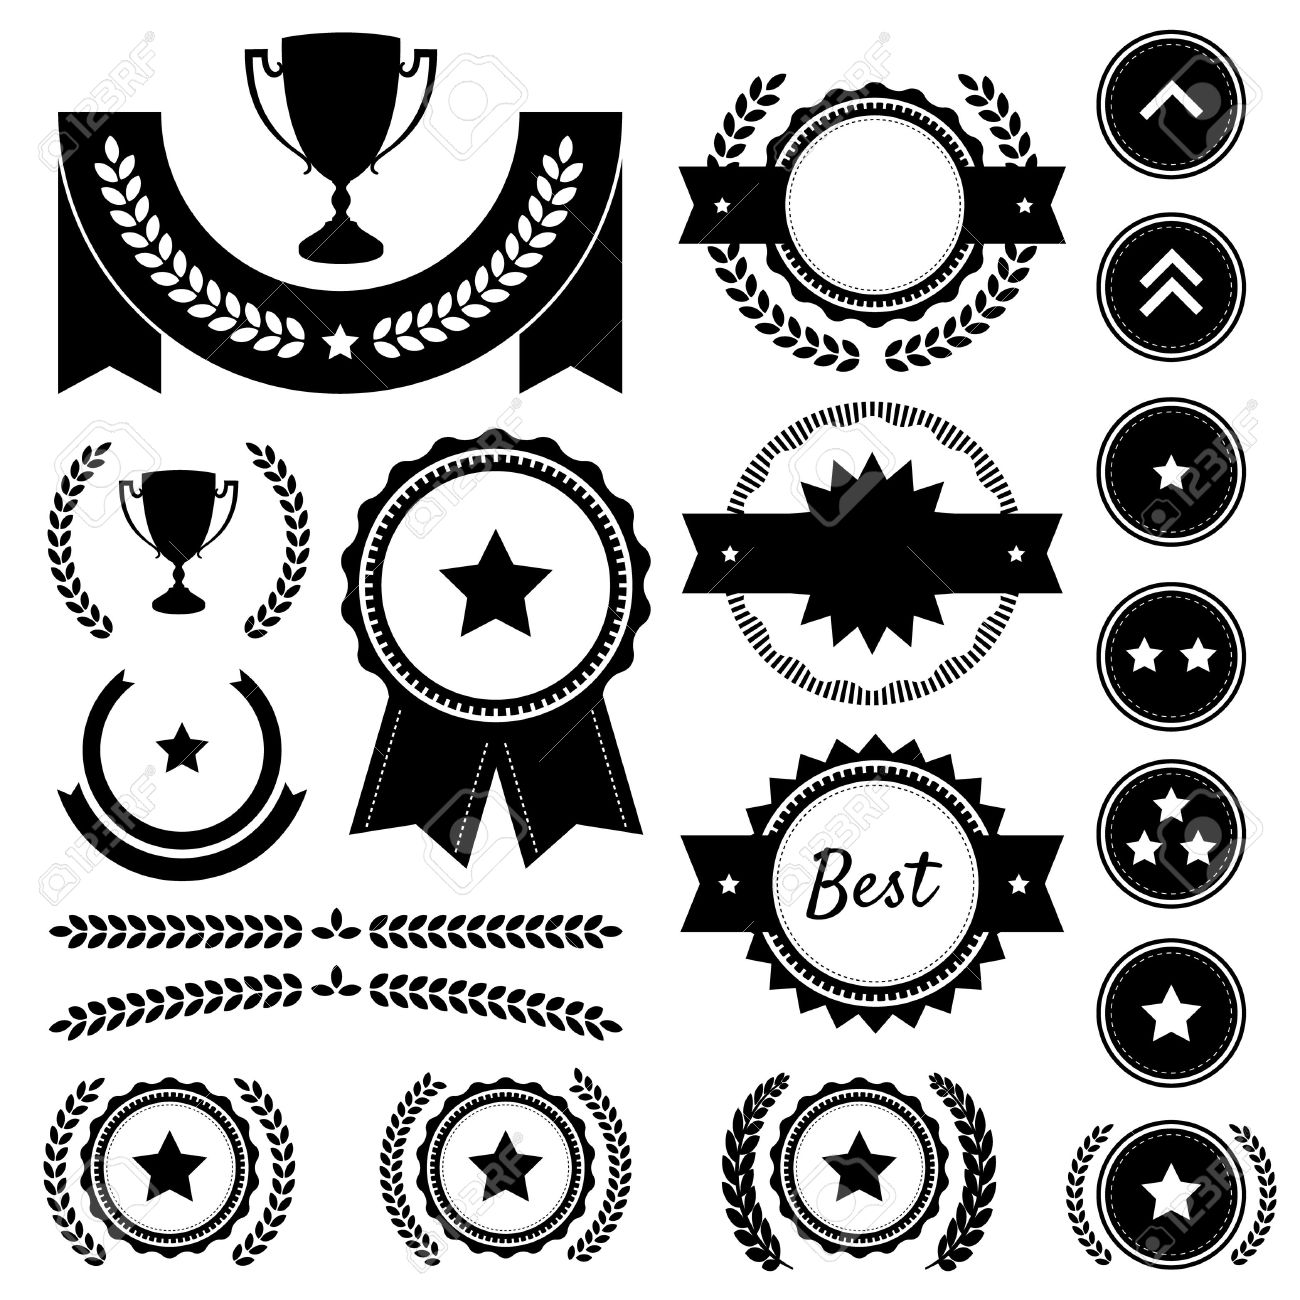 Set Of Achievement Award Silhouettes Includes Various Badges.